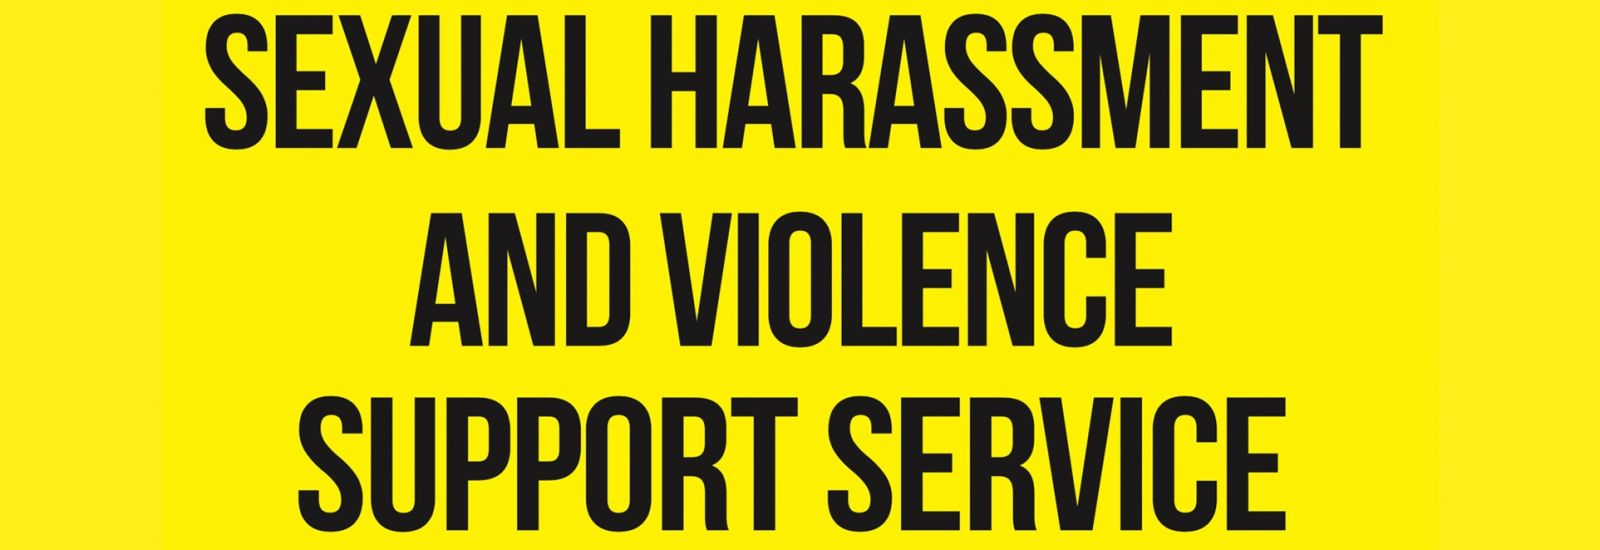 Sexual harassment and violence support service